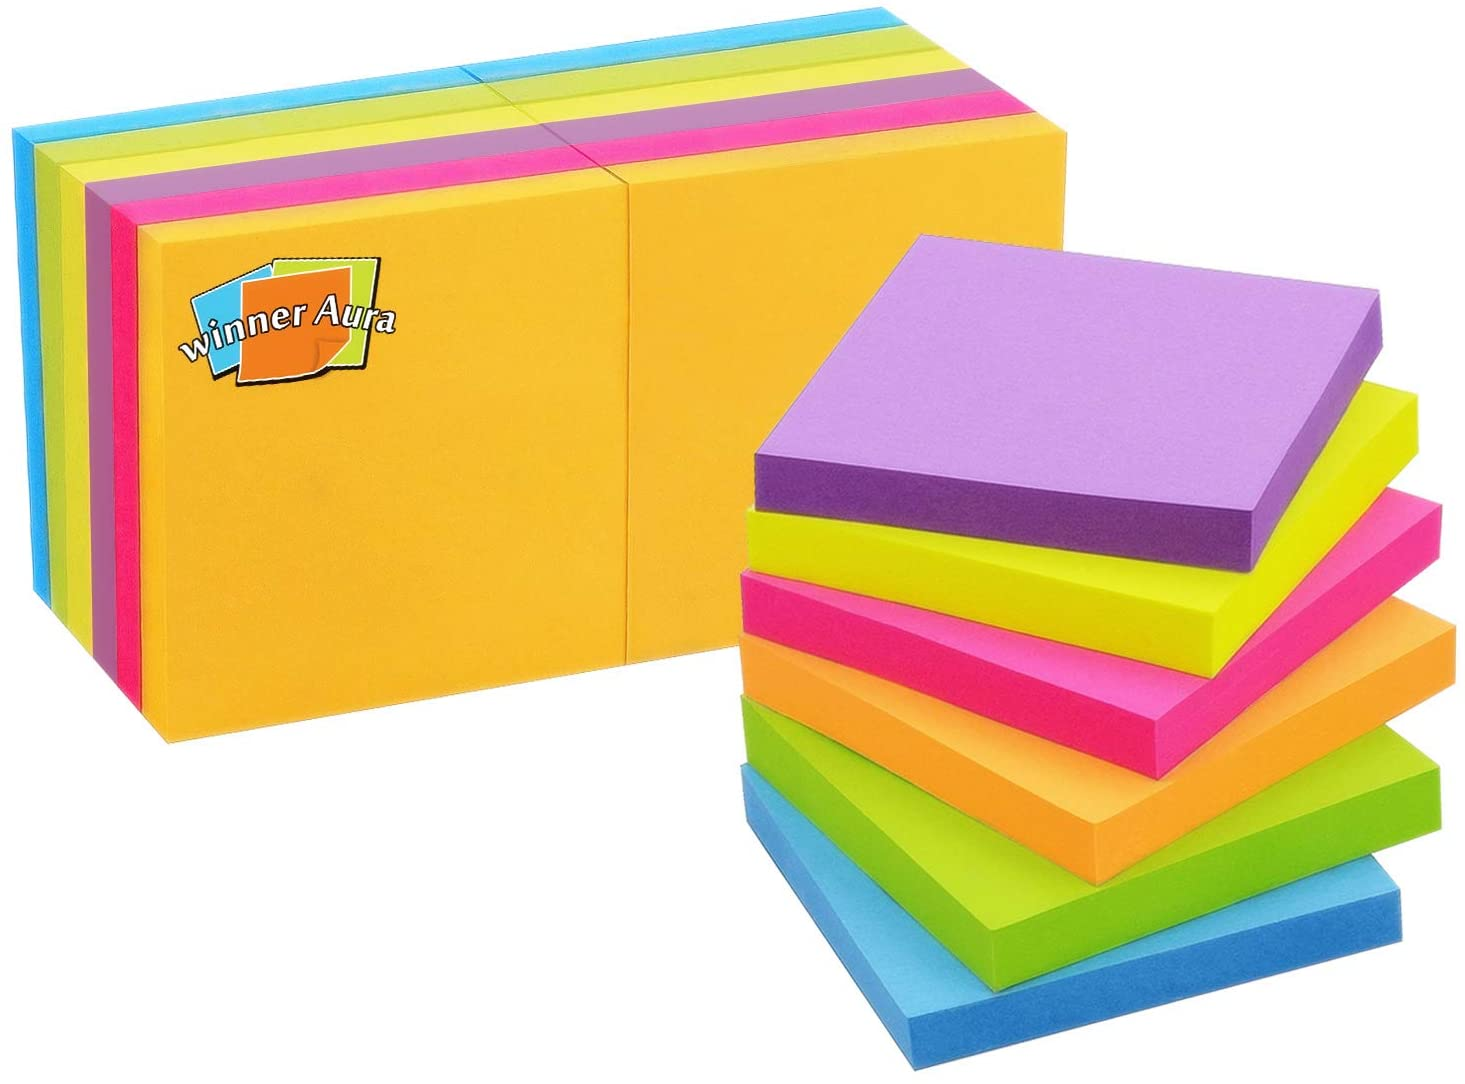 Pop Up Sticky Notes 3x3 inch Bright Colors Self-Stick Pads 12 Pads/Pack 100 Sheets/Pad Total 1200 Sheets